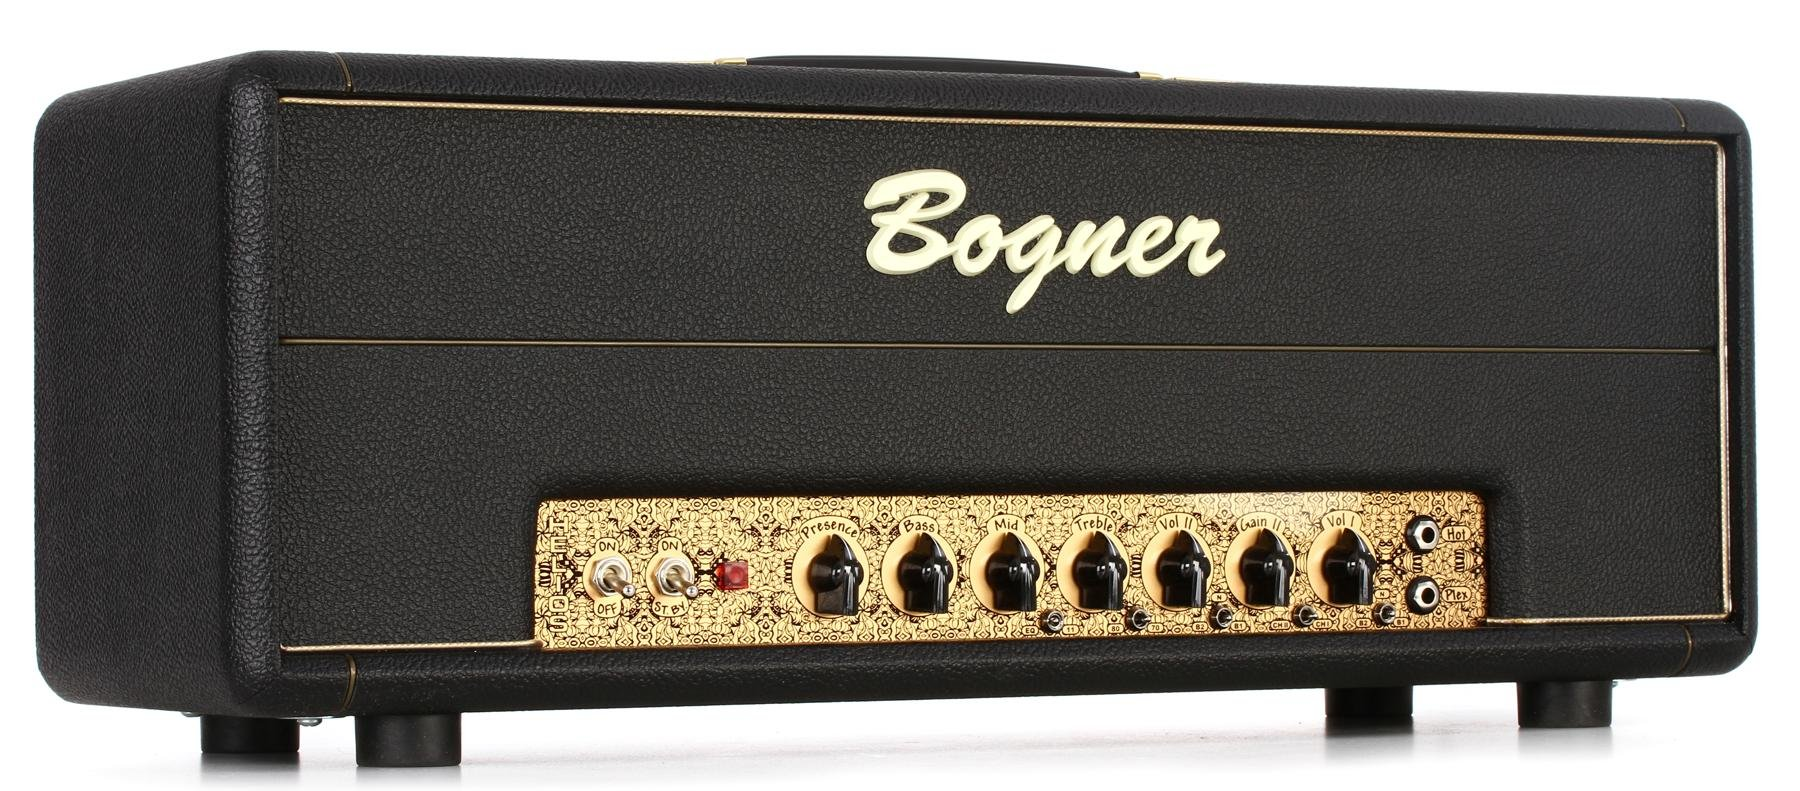 Bogner Helios 50 Watt Handwired Tube Head Sweetwater 45w Power Amplifier Include Tone Control Image 1